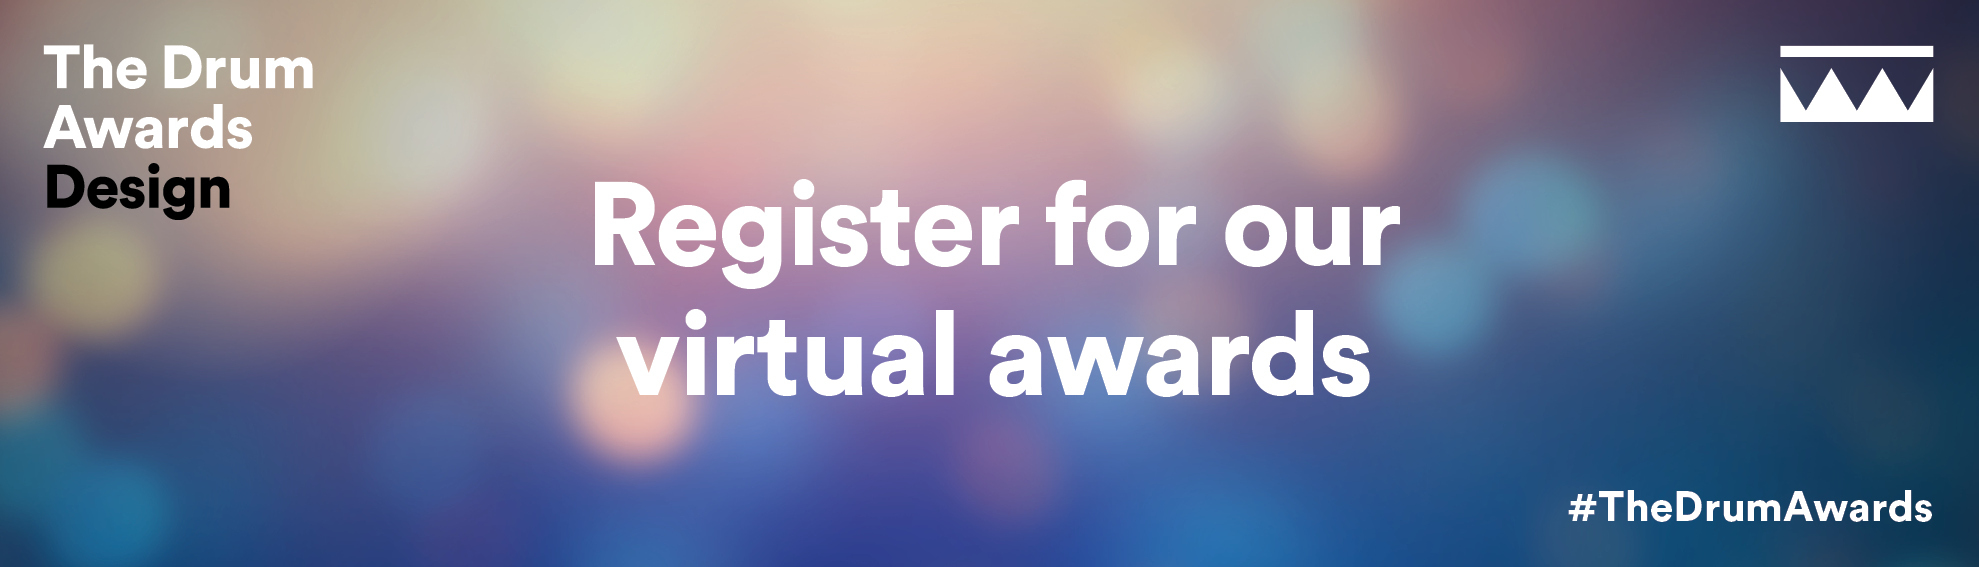 The Drum Awards for Design - Register for our virtual awards